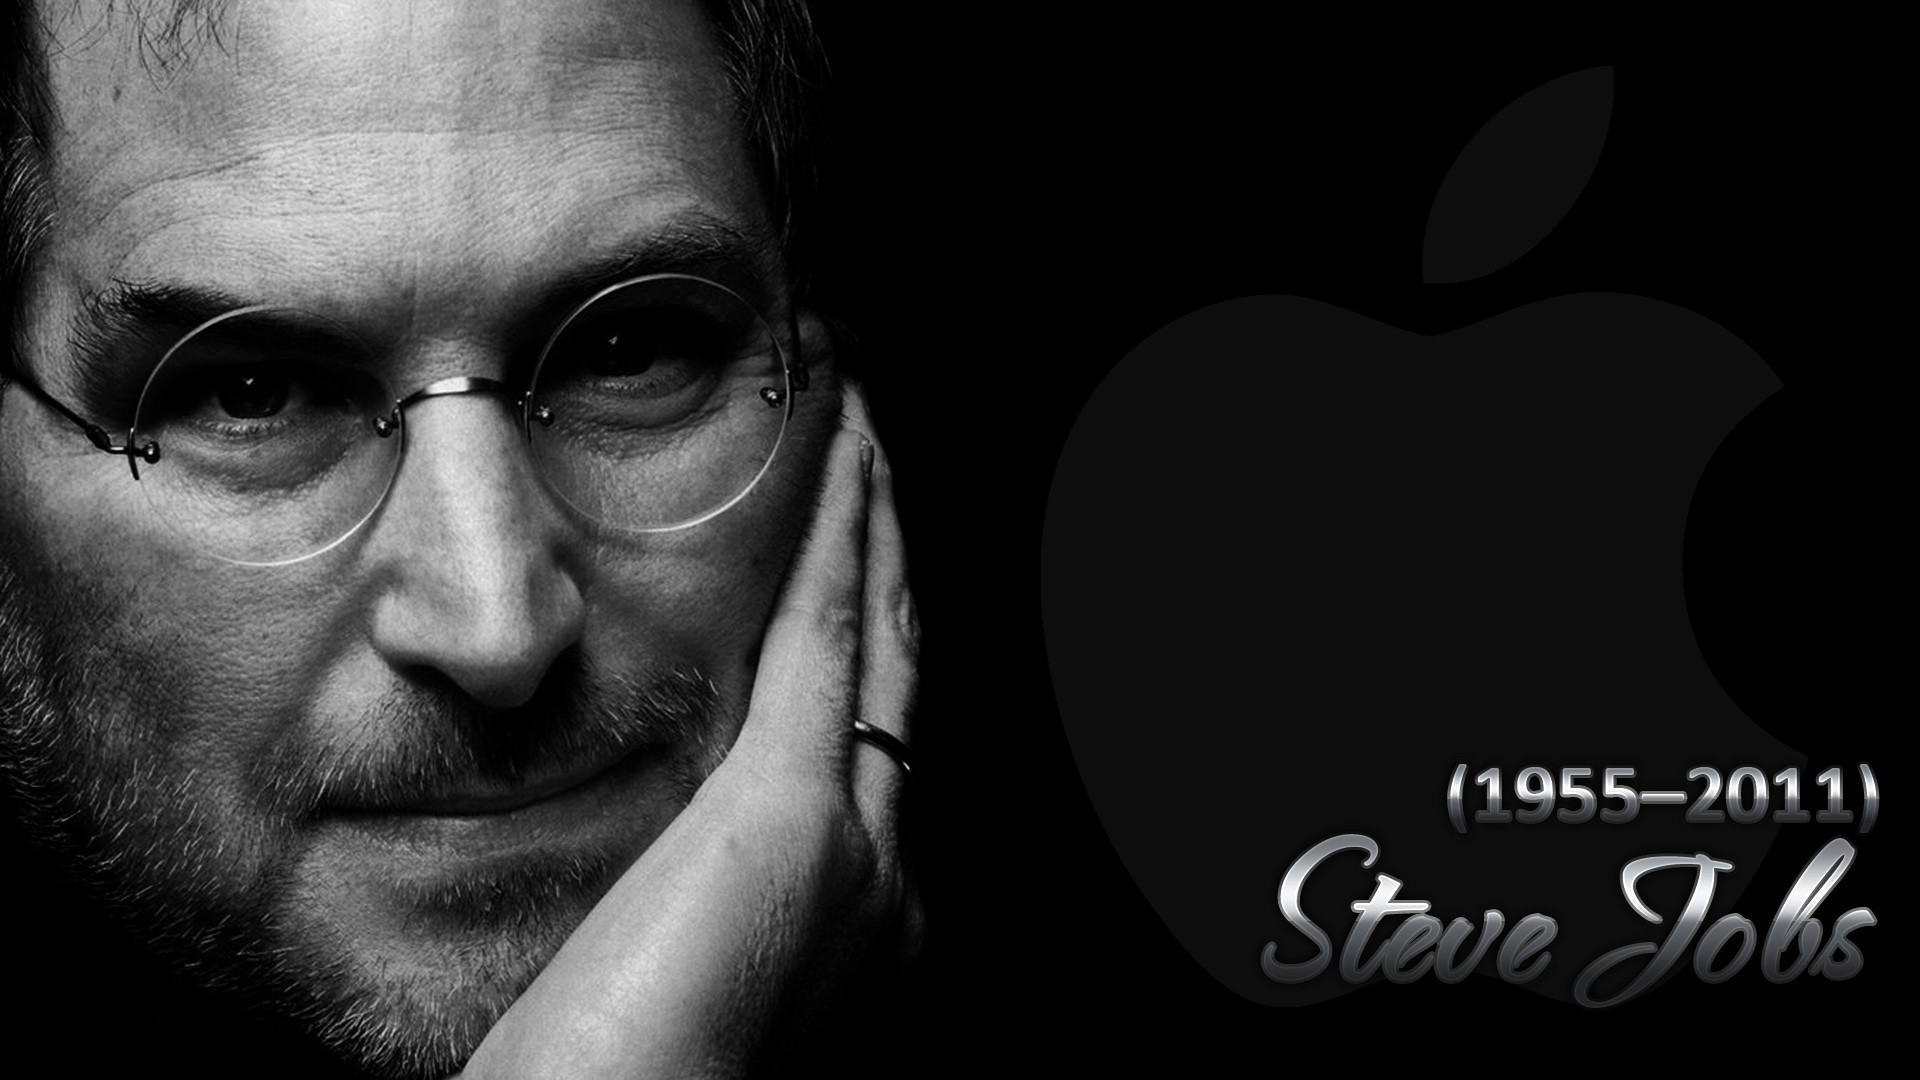 Black-computers-apple-inc-mac-steve-jobs-world-1920x1080-computers-apple-mac-steve-jobs-worl-wallpaper-wpc9002925